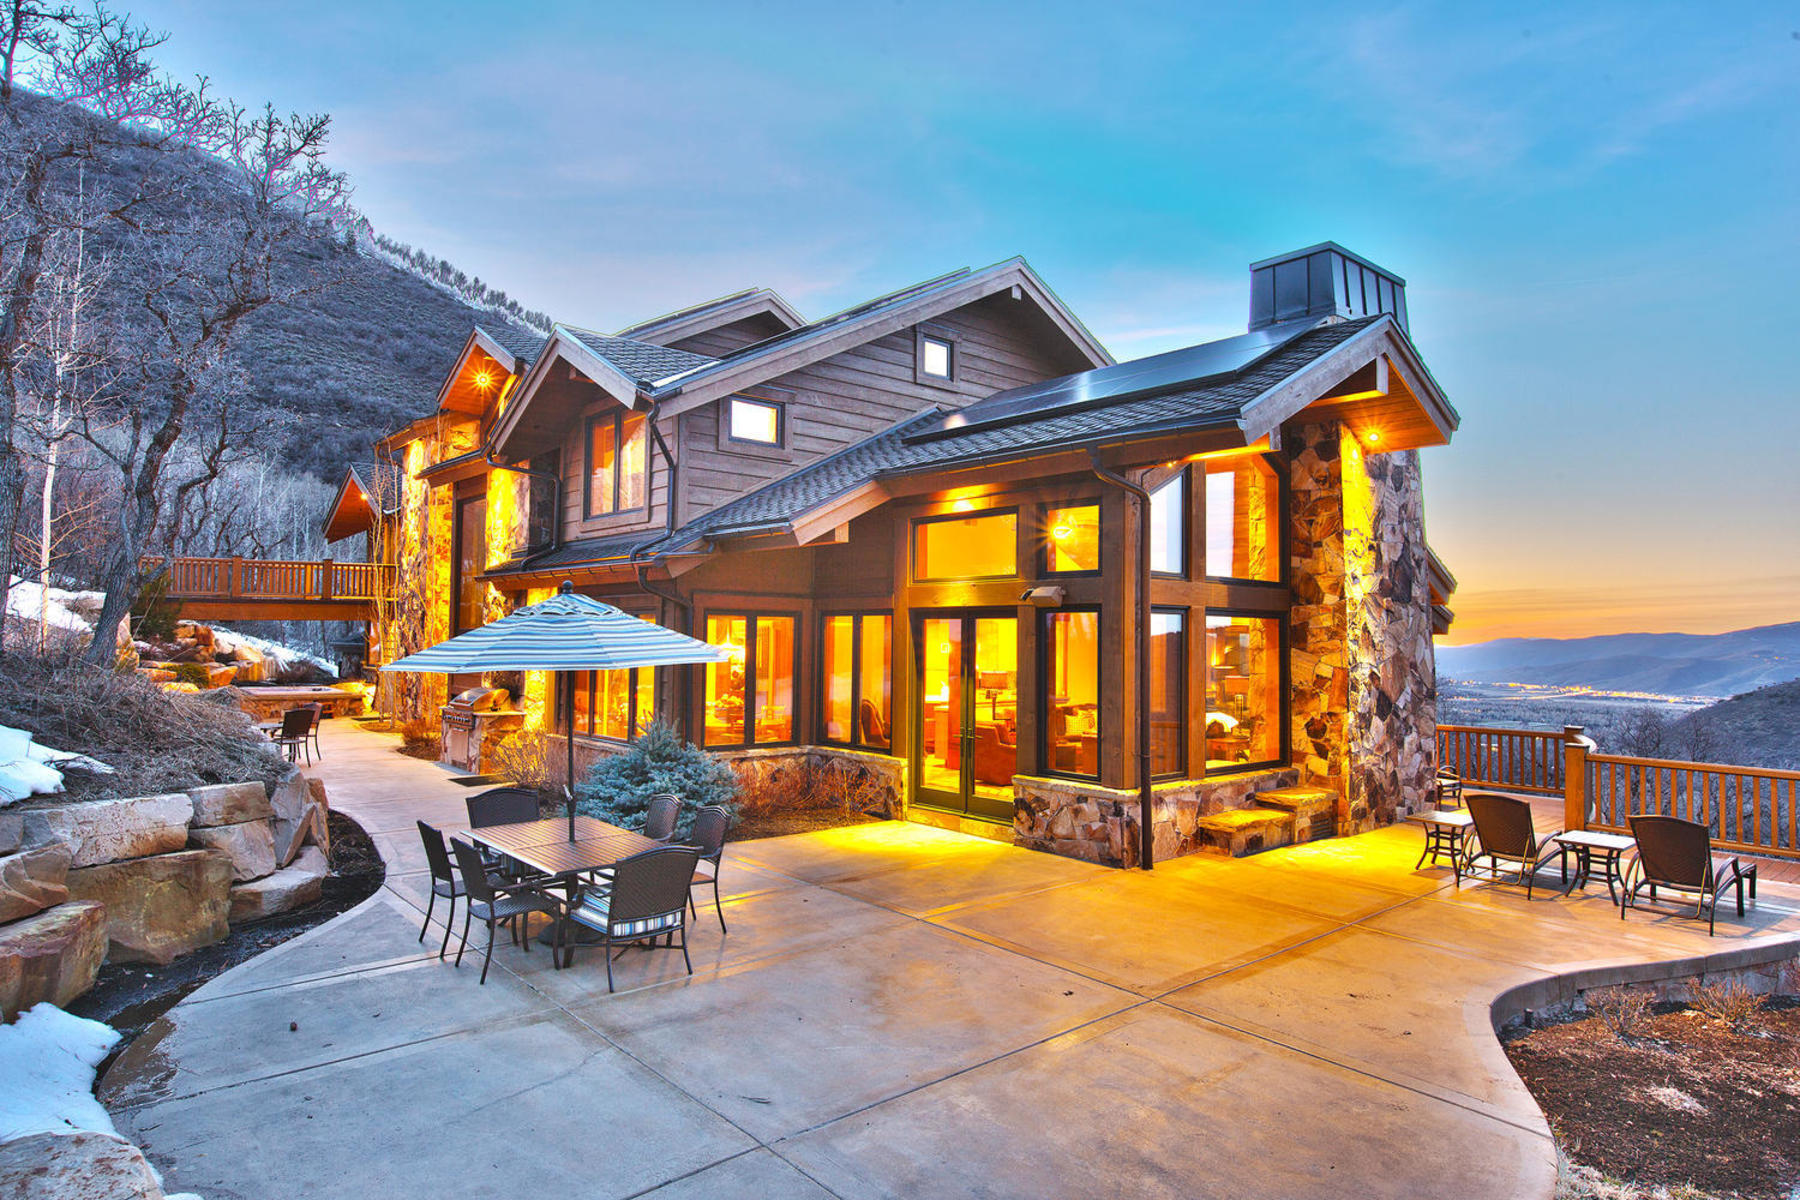 Single Family Home for Sale at Timeless Elegance at the Top of Aspen Springs 25 Canyon Ct Park City, Utah, 84060 United States